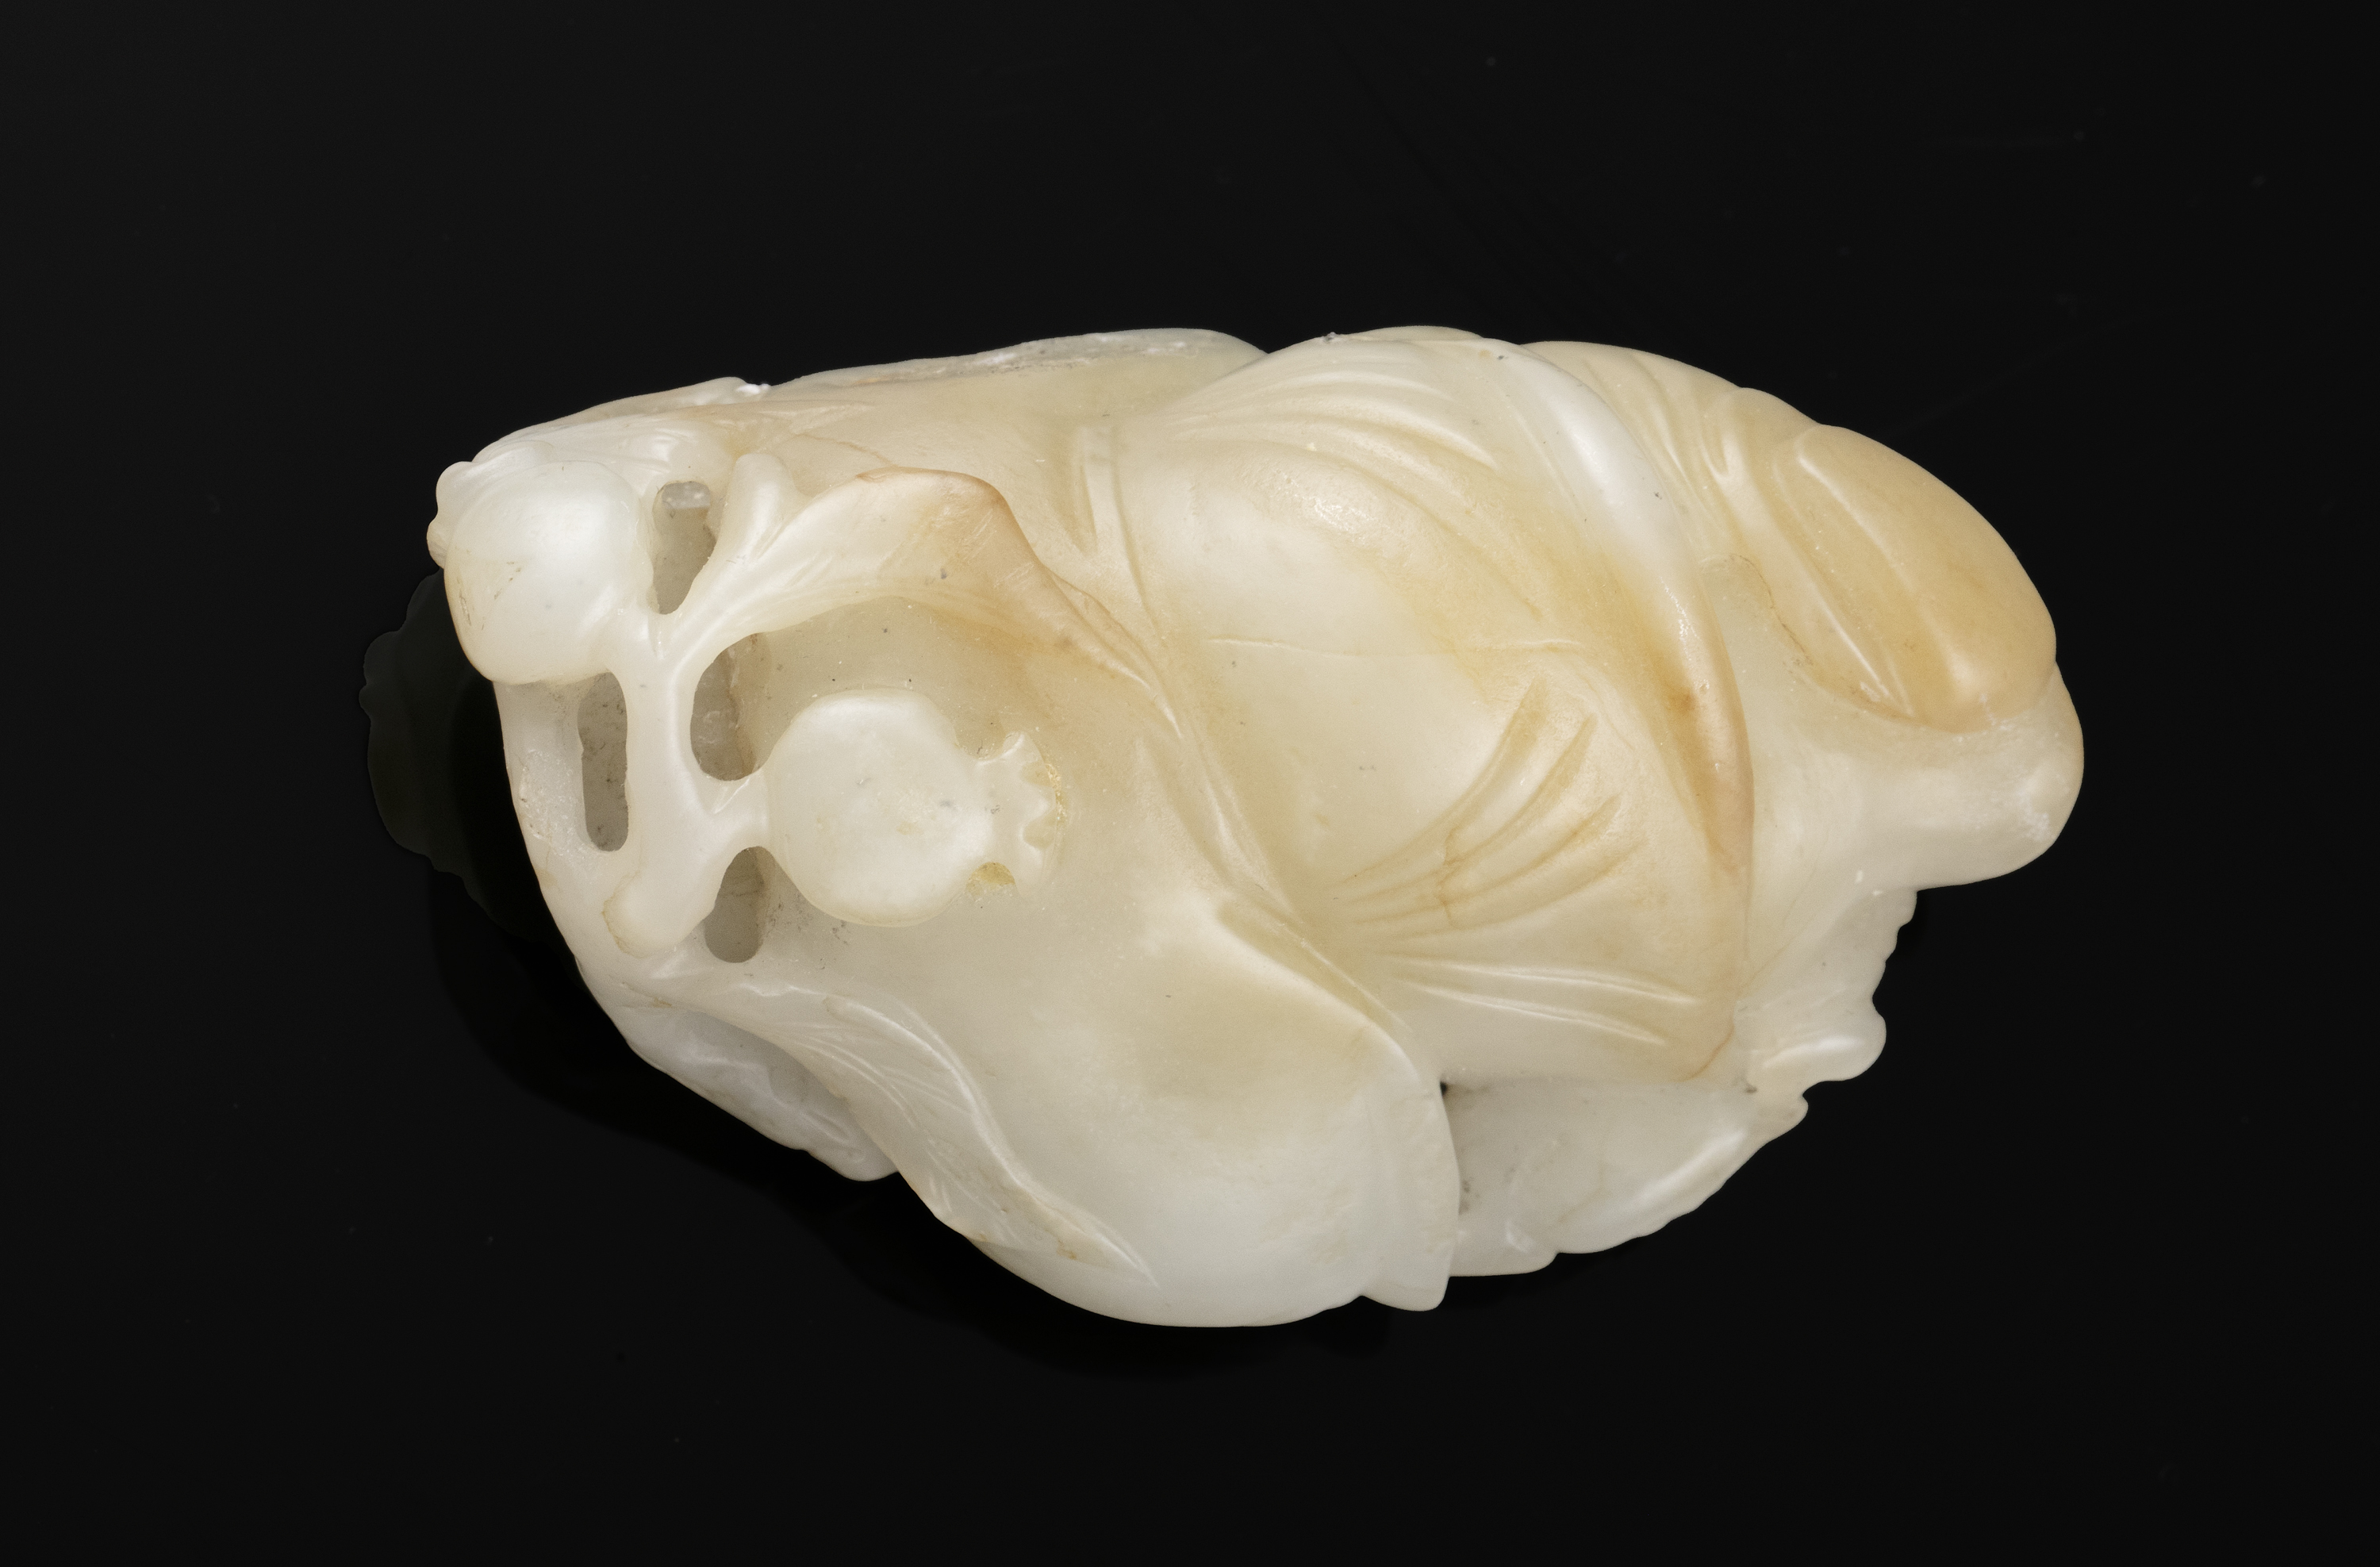 A WHITE AND RUSSETS JADE CARVING OF A HOHO / HEHE / ERXIAN / 和合二仙 China The boy is depicted grasping - Image 9 of 20